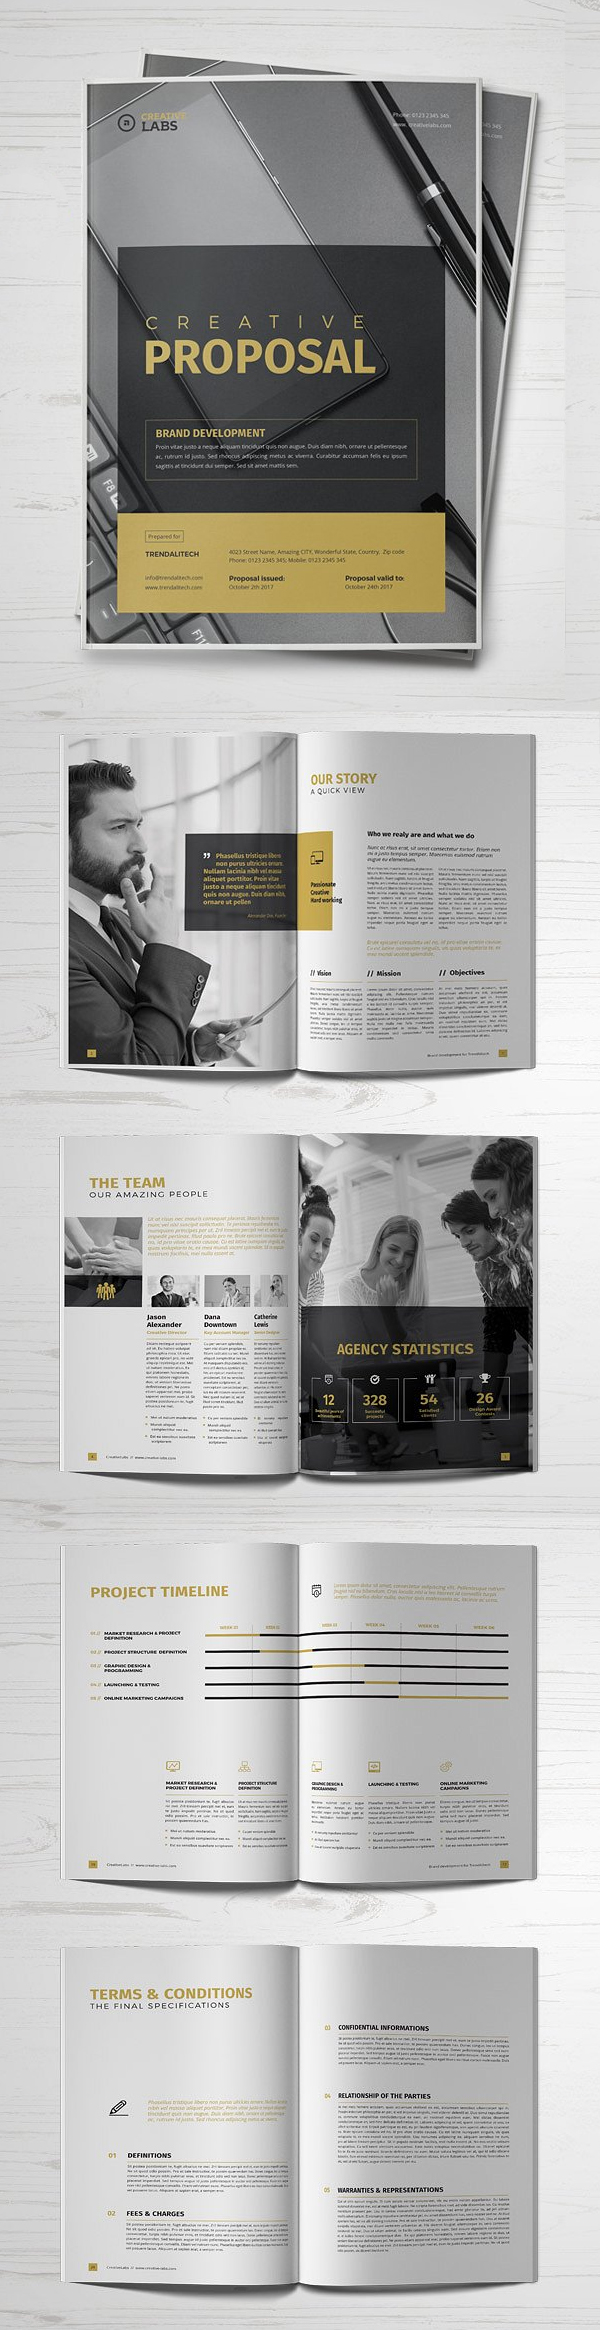 Professional Business Proposal Templates Design - 18